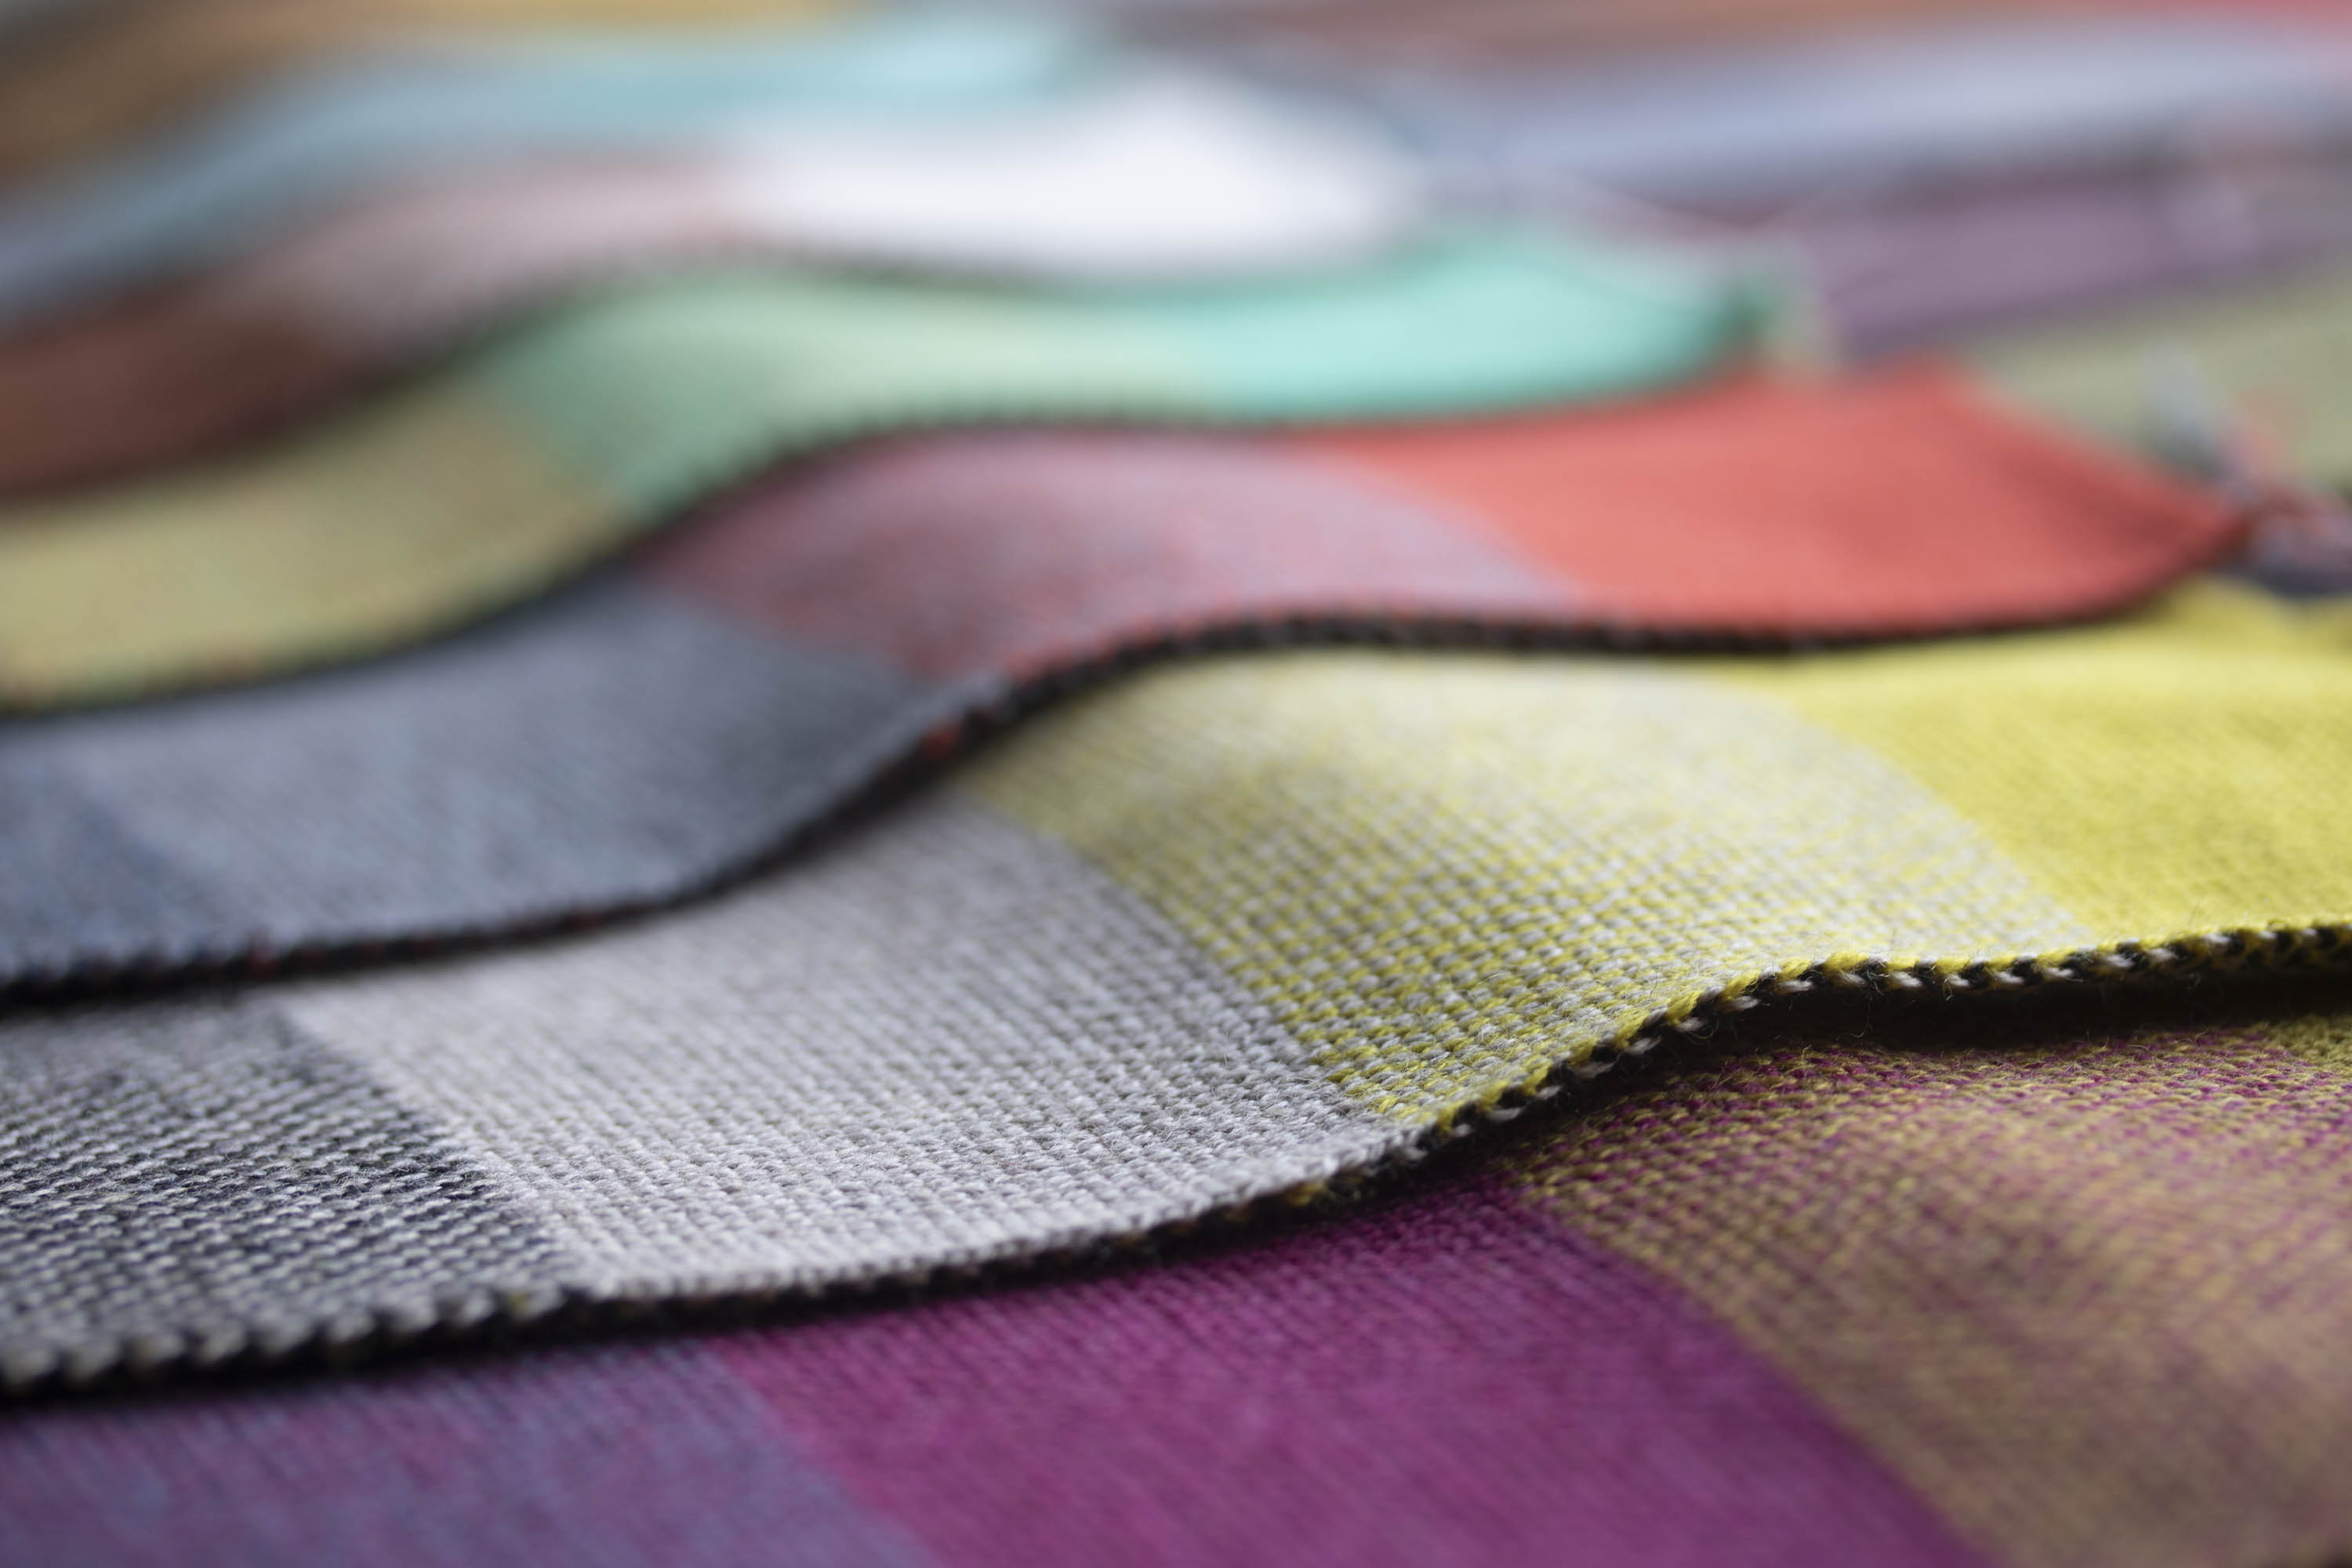 Several swatches of knit, showing overlapping colours using 3 colour of yarn. In the foreground, yellow, grey and black